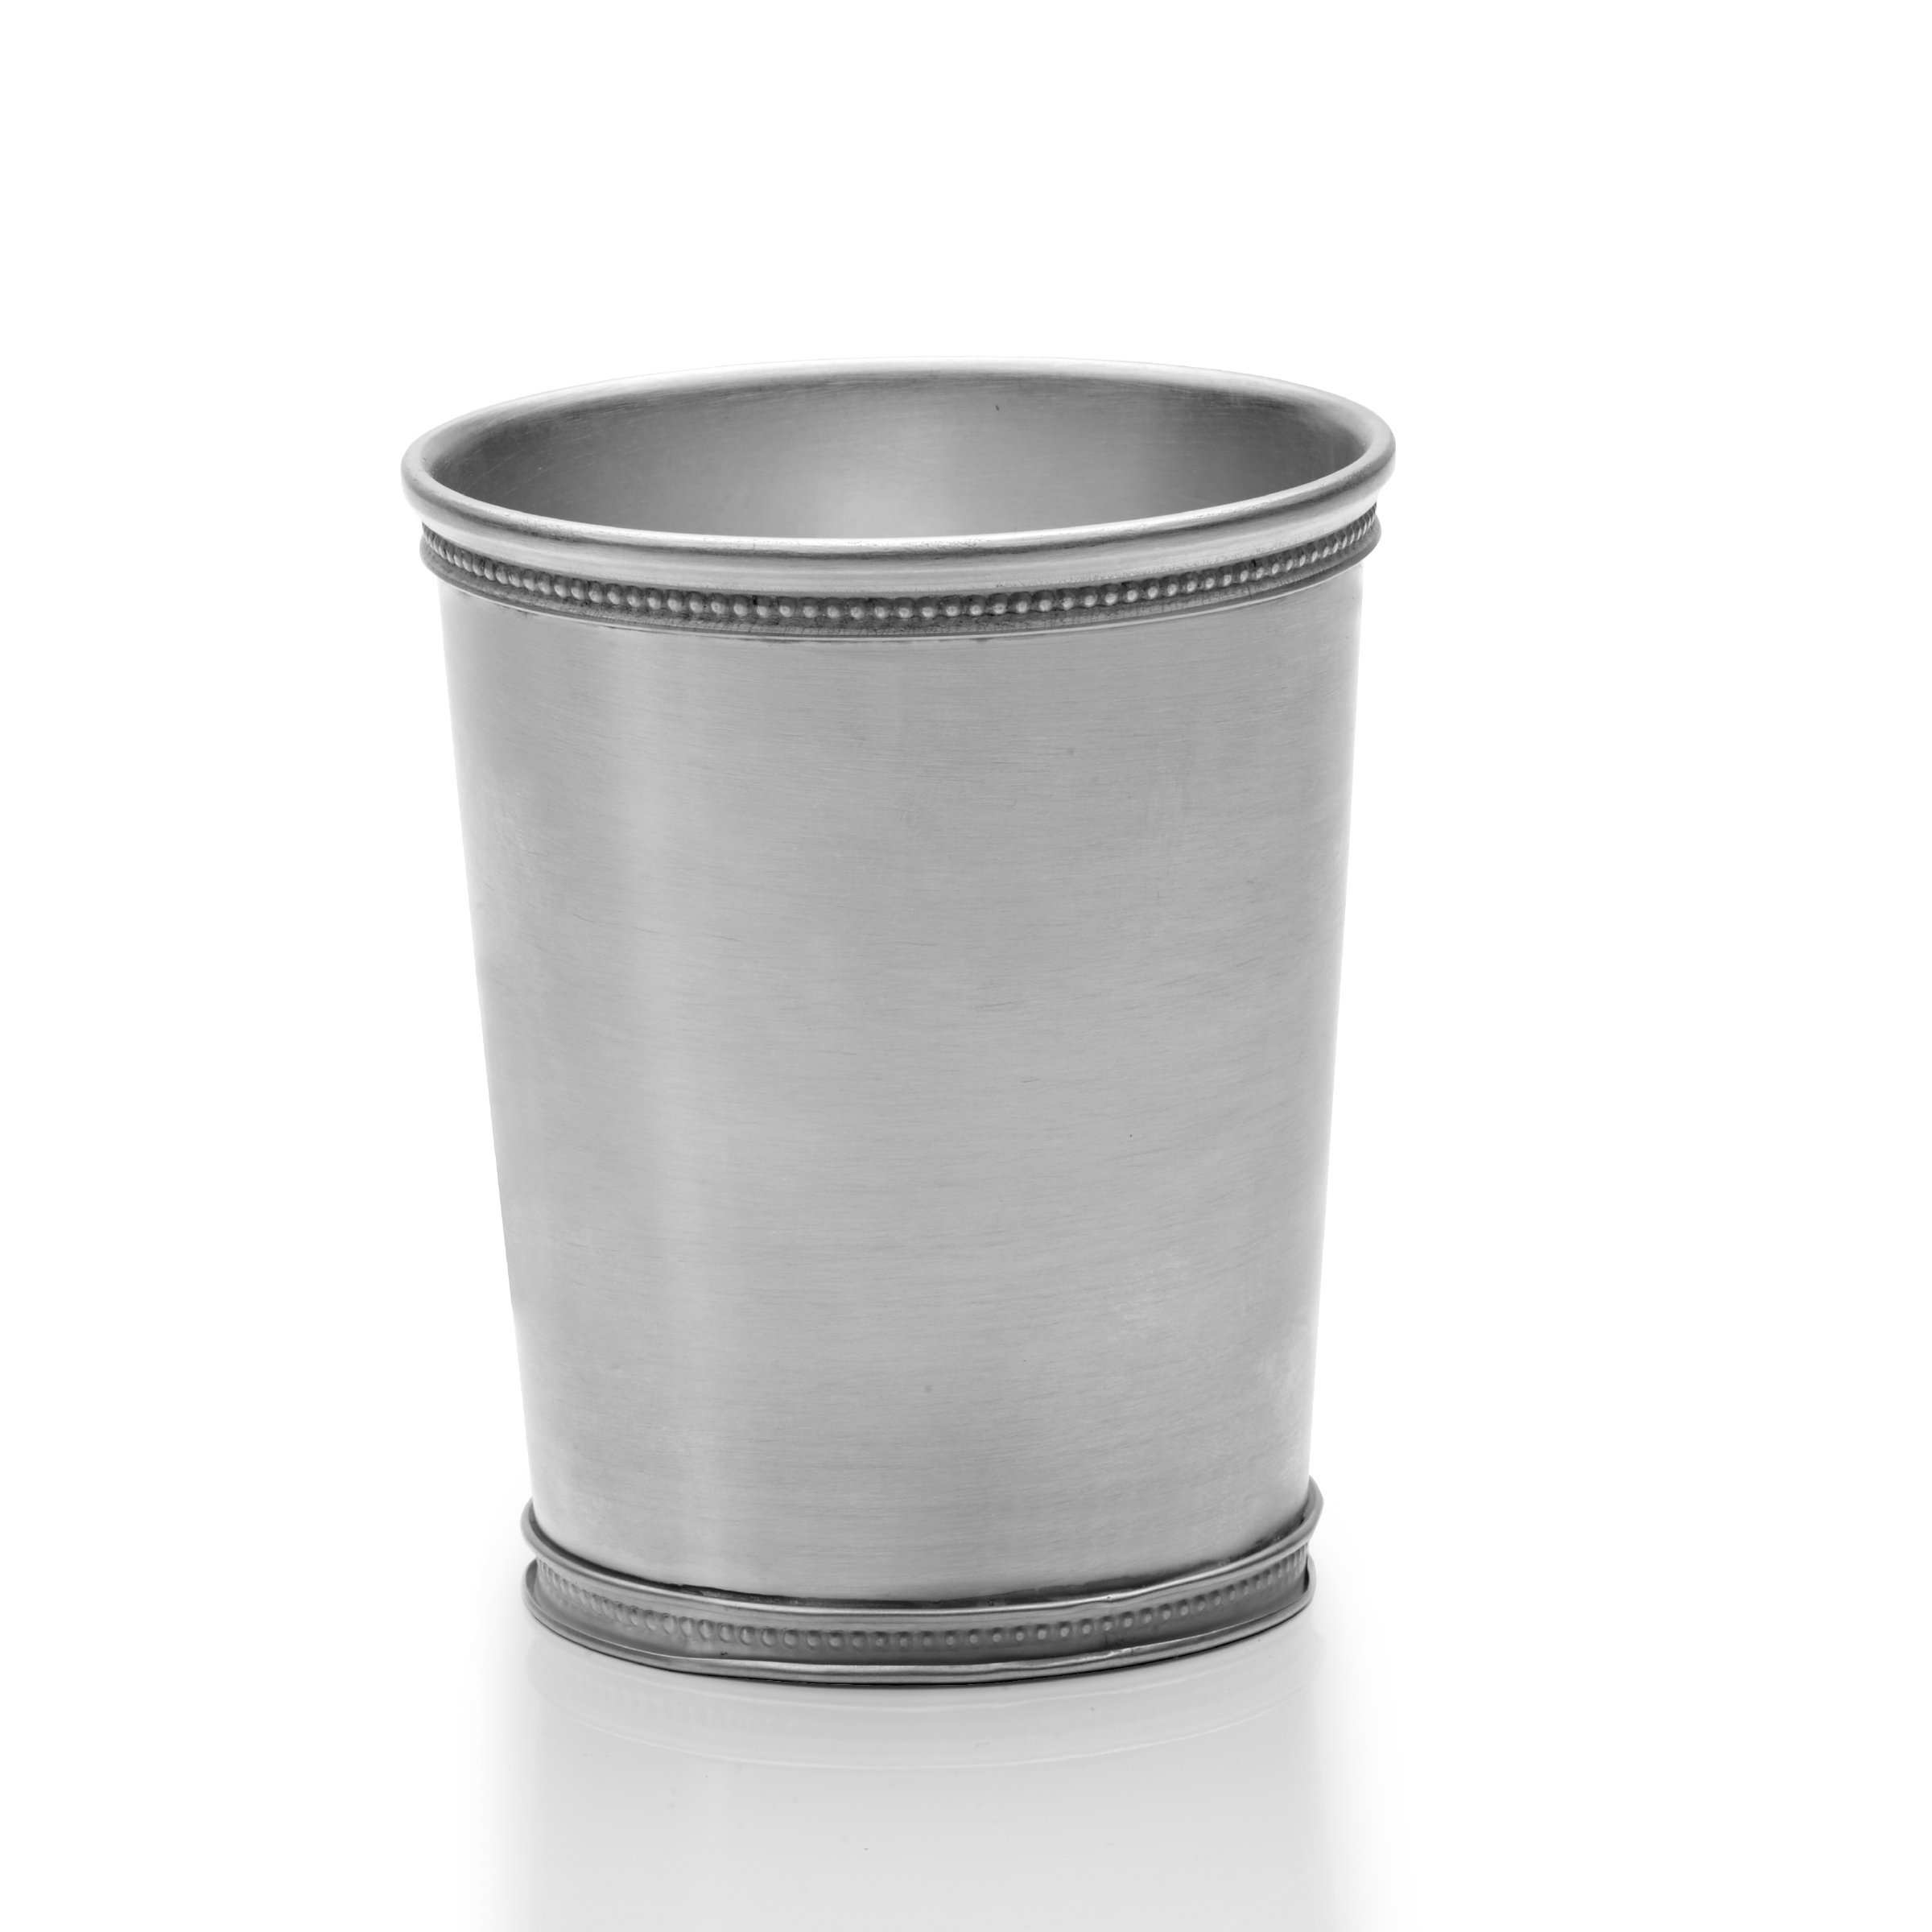 Mikasa Silver-Plated Mint Julep Cup, 12-Ounce